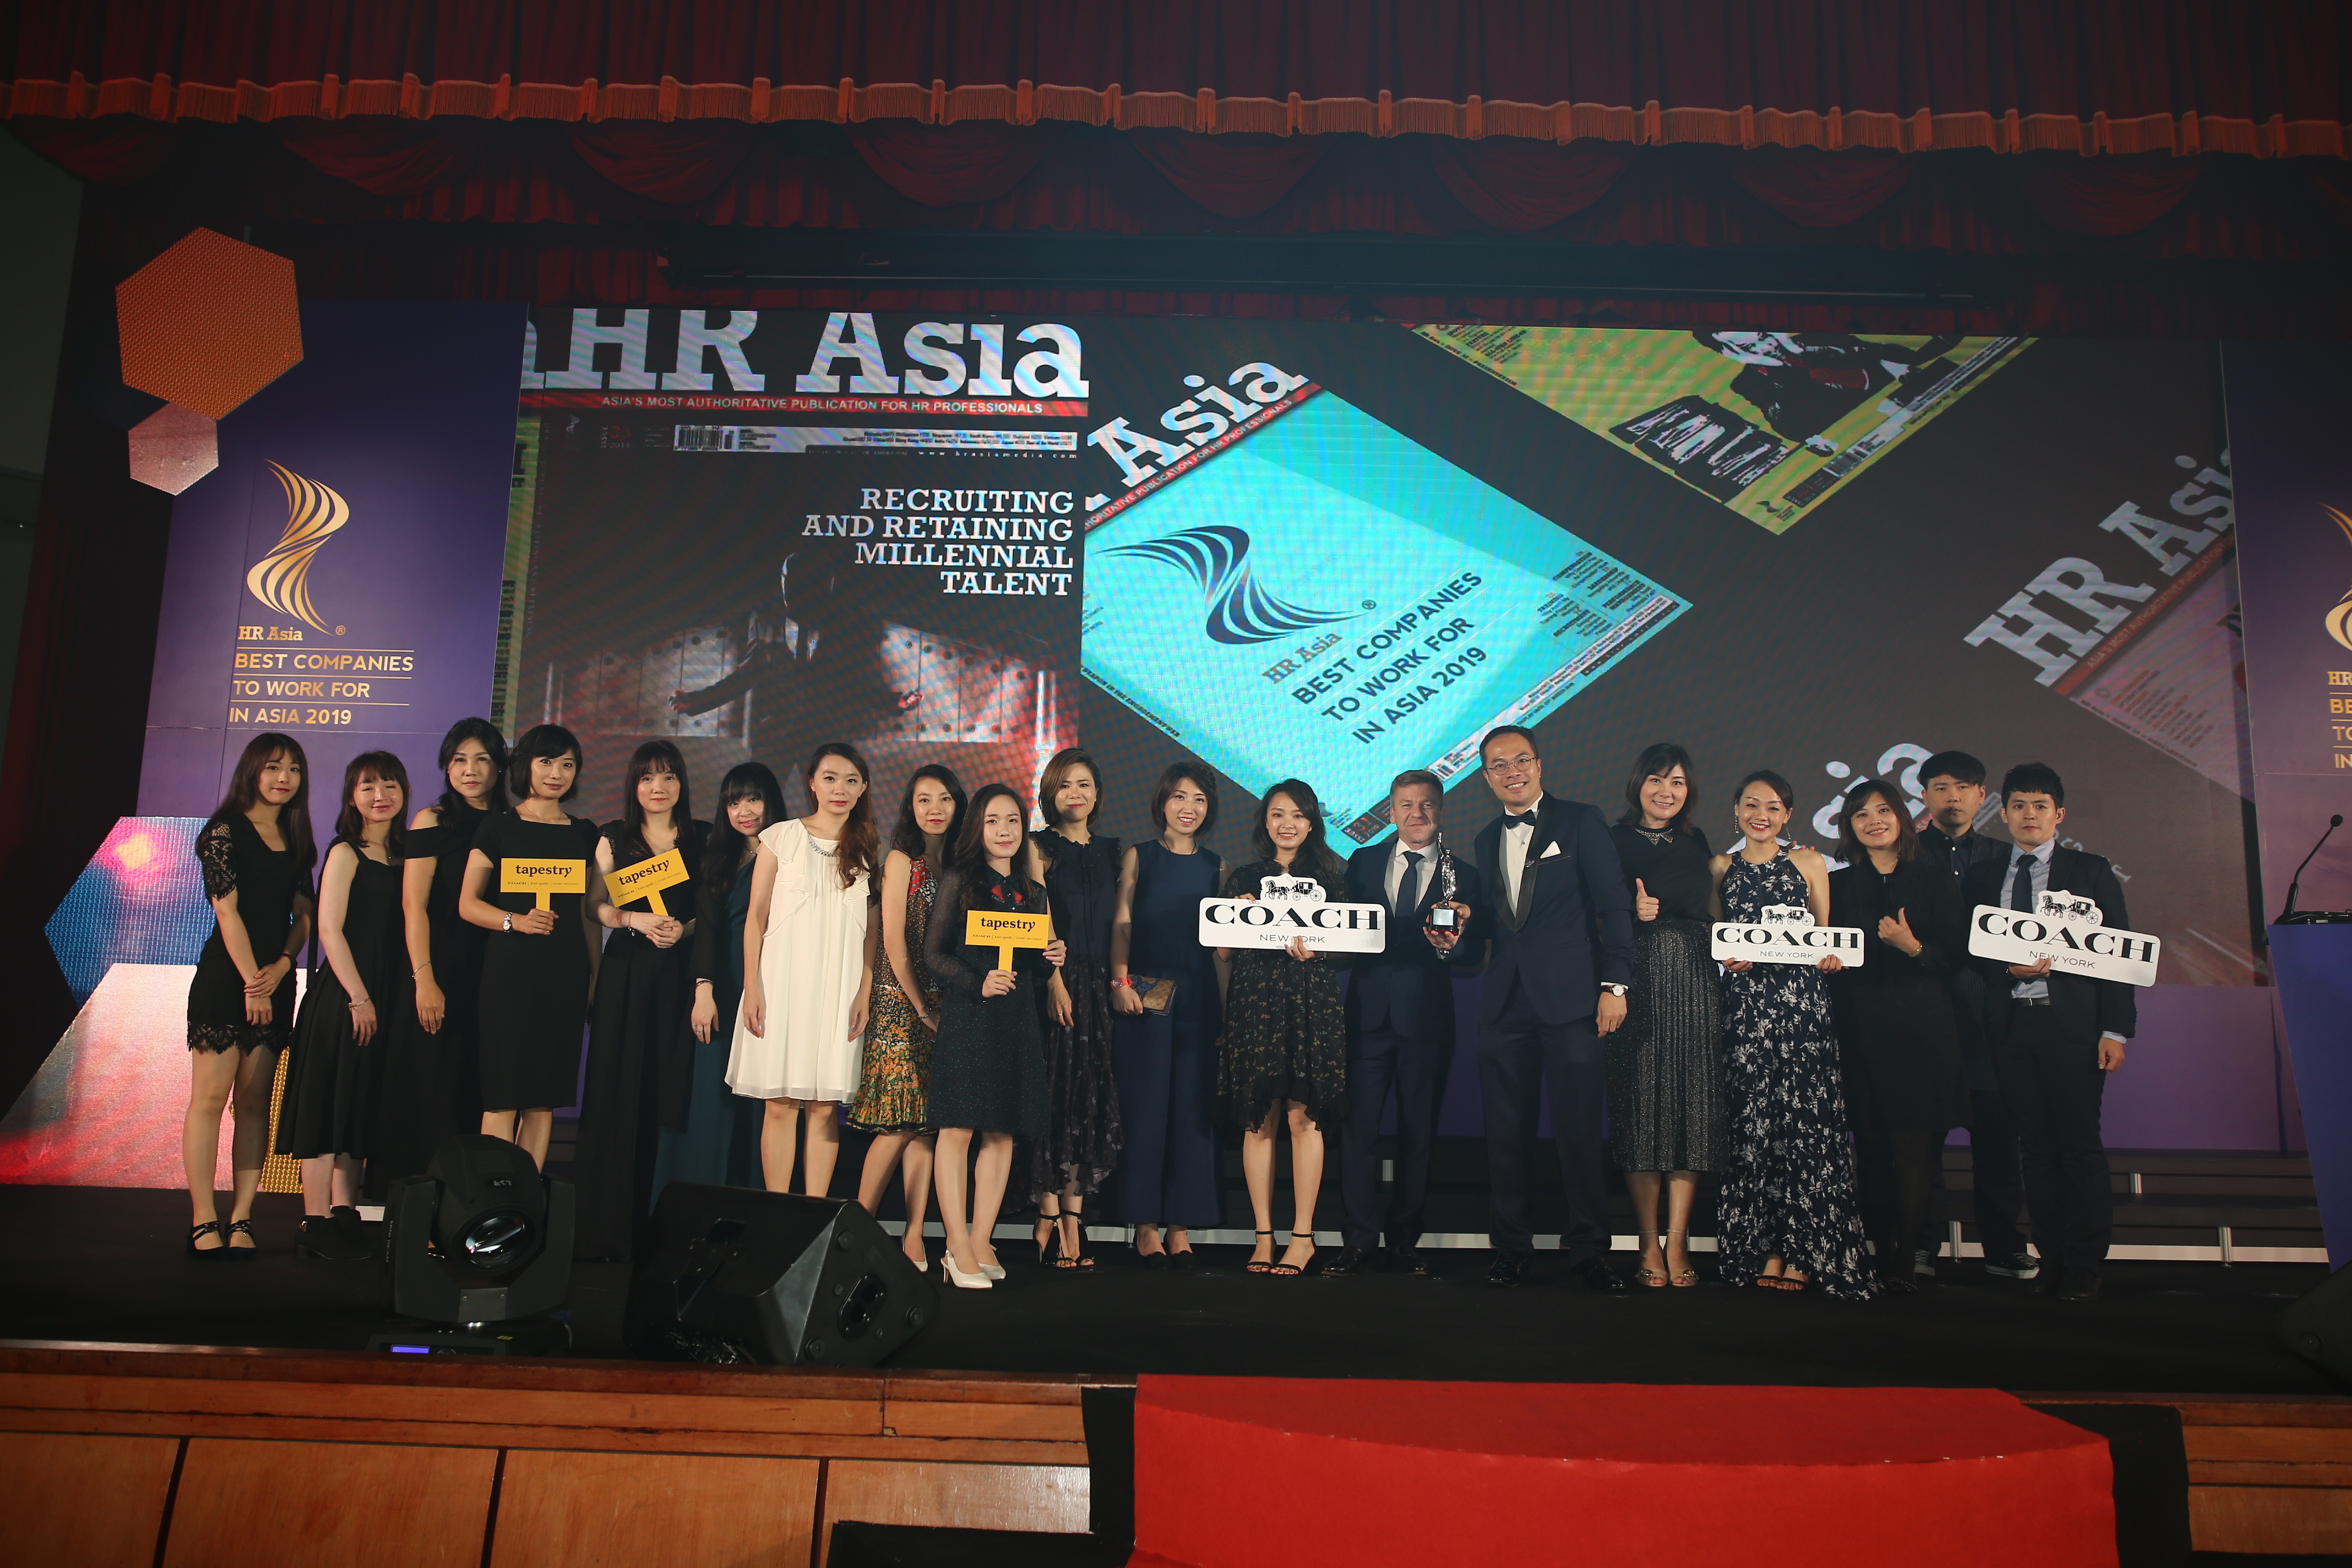 5b6afba996 COACH Taiwan Named 'Best Company to Work for in Asia 2019' by HR ...